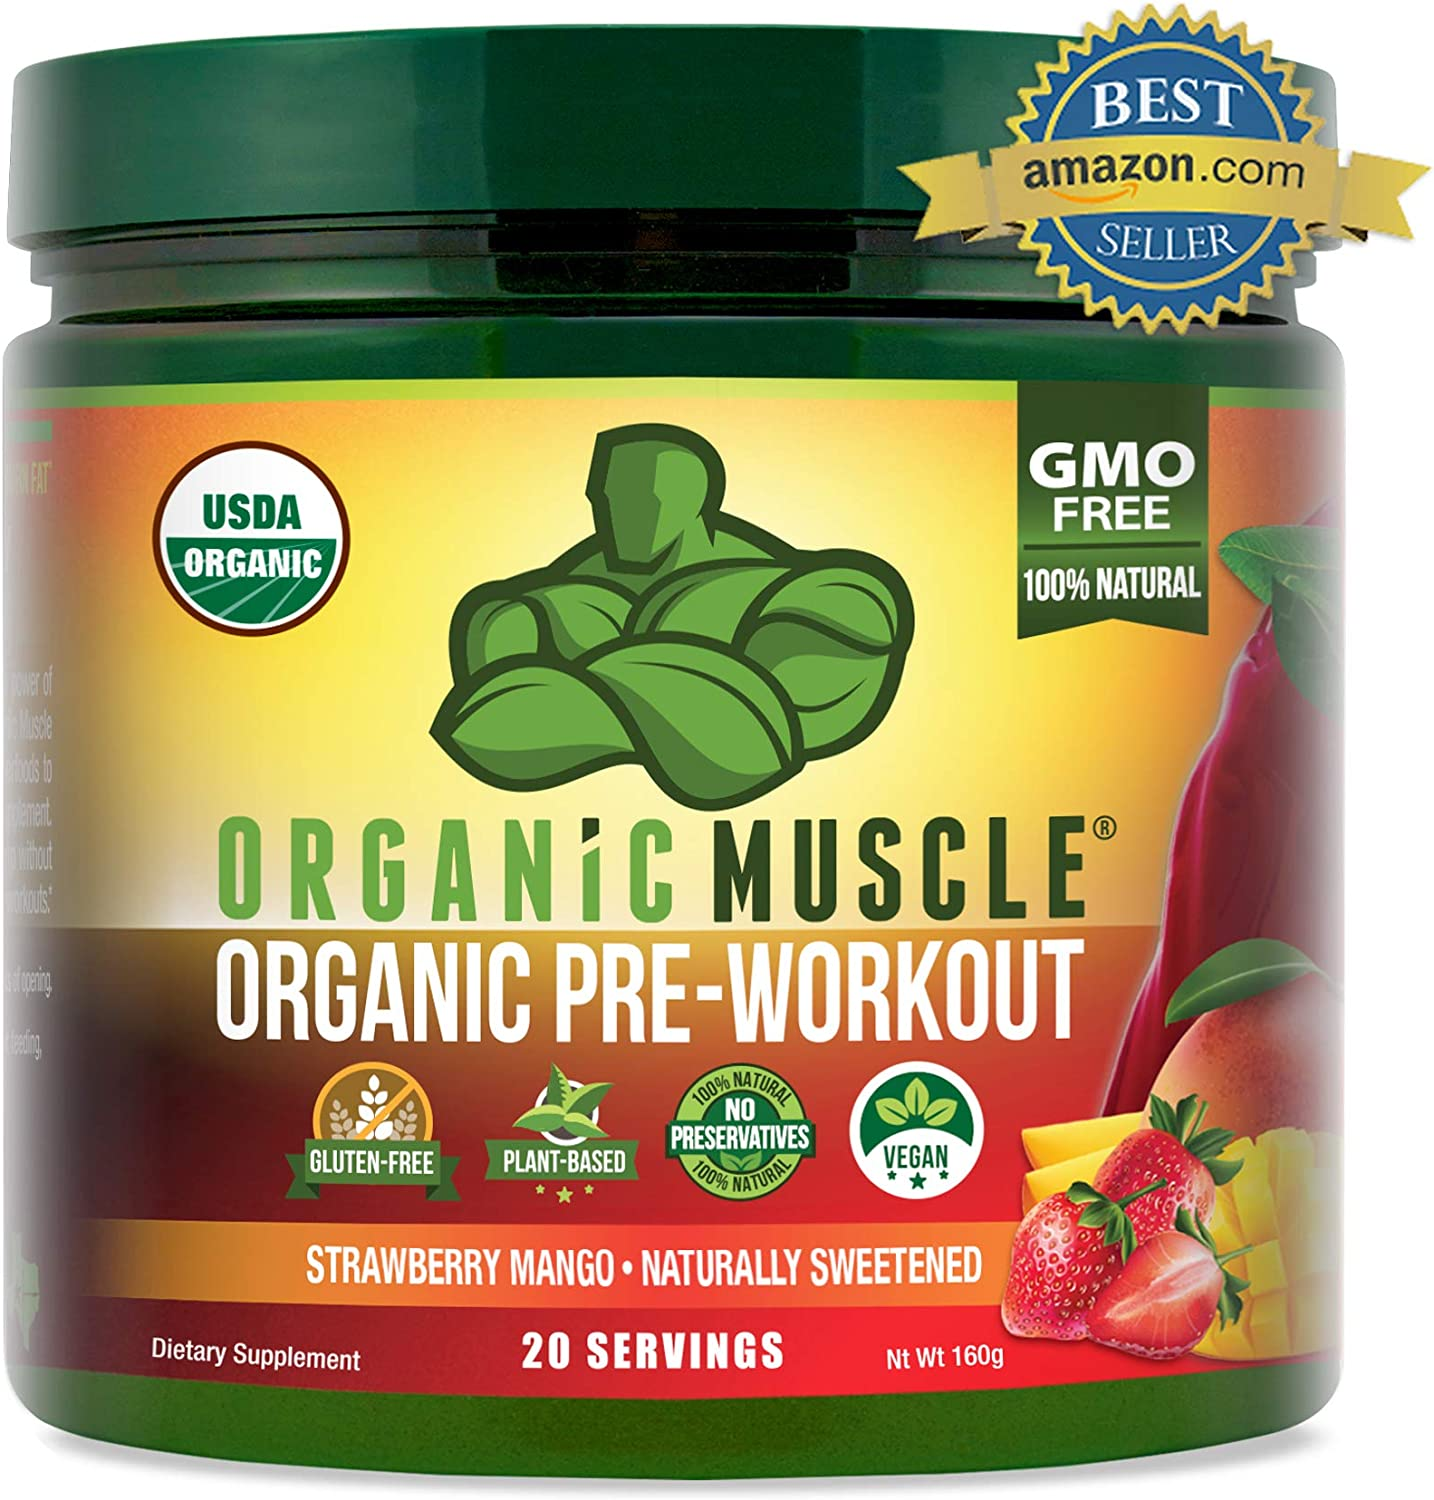 ORGANIC MUSCLE 1 Rated Organic Pre Workout Powder **New Flavor** Natural Vegan Keto Pre-Workout Organic Energy Supplement for Men Women- Non-GMO, Paleo, Plant Based Strawberry Mango 160g